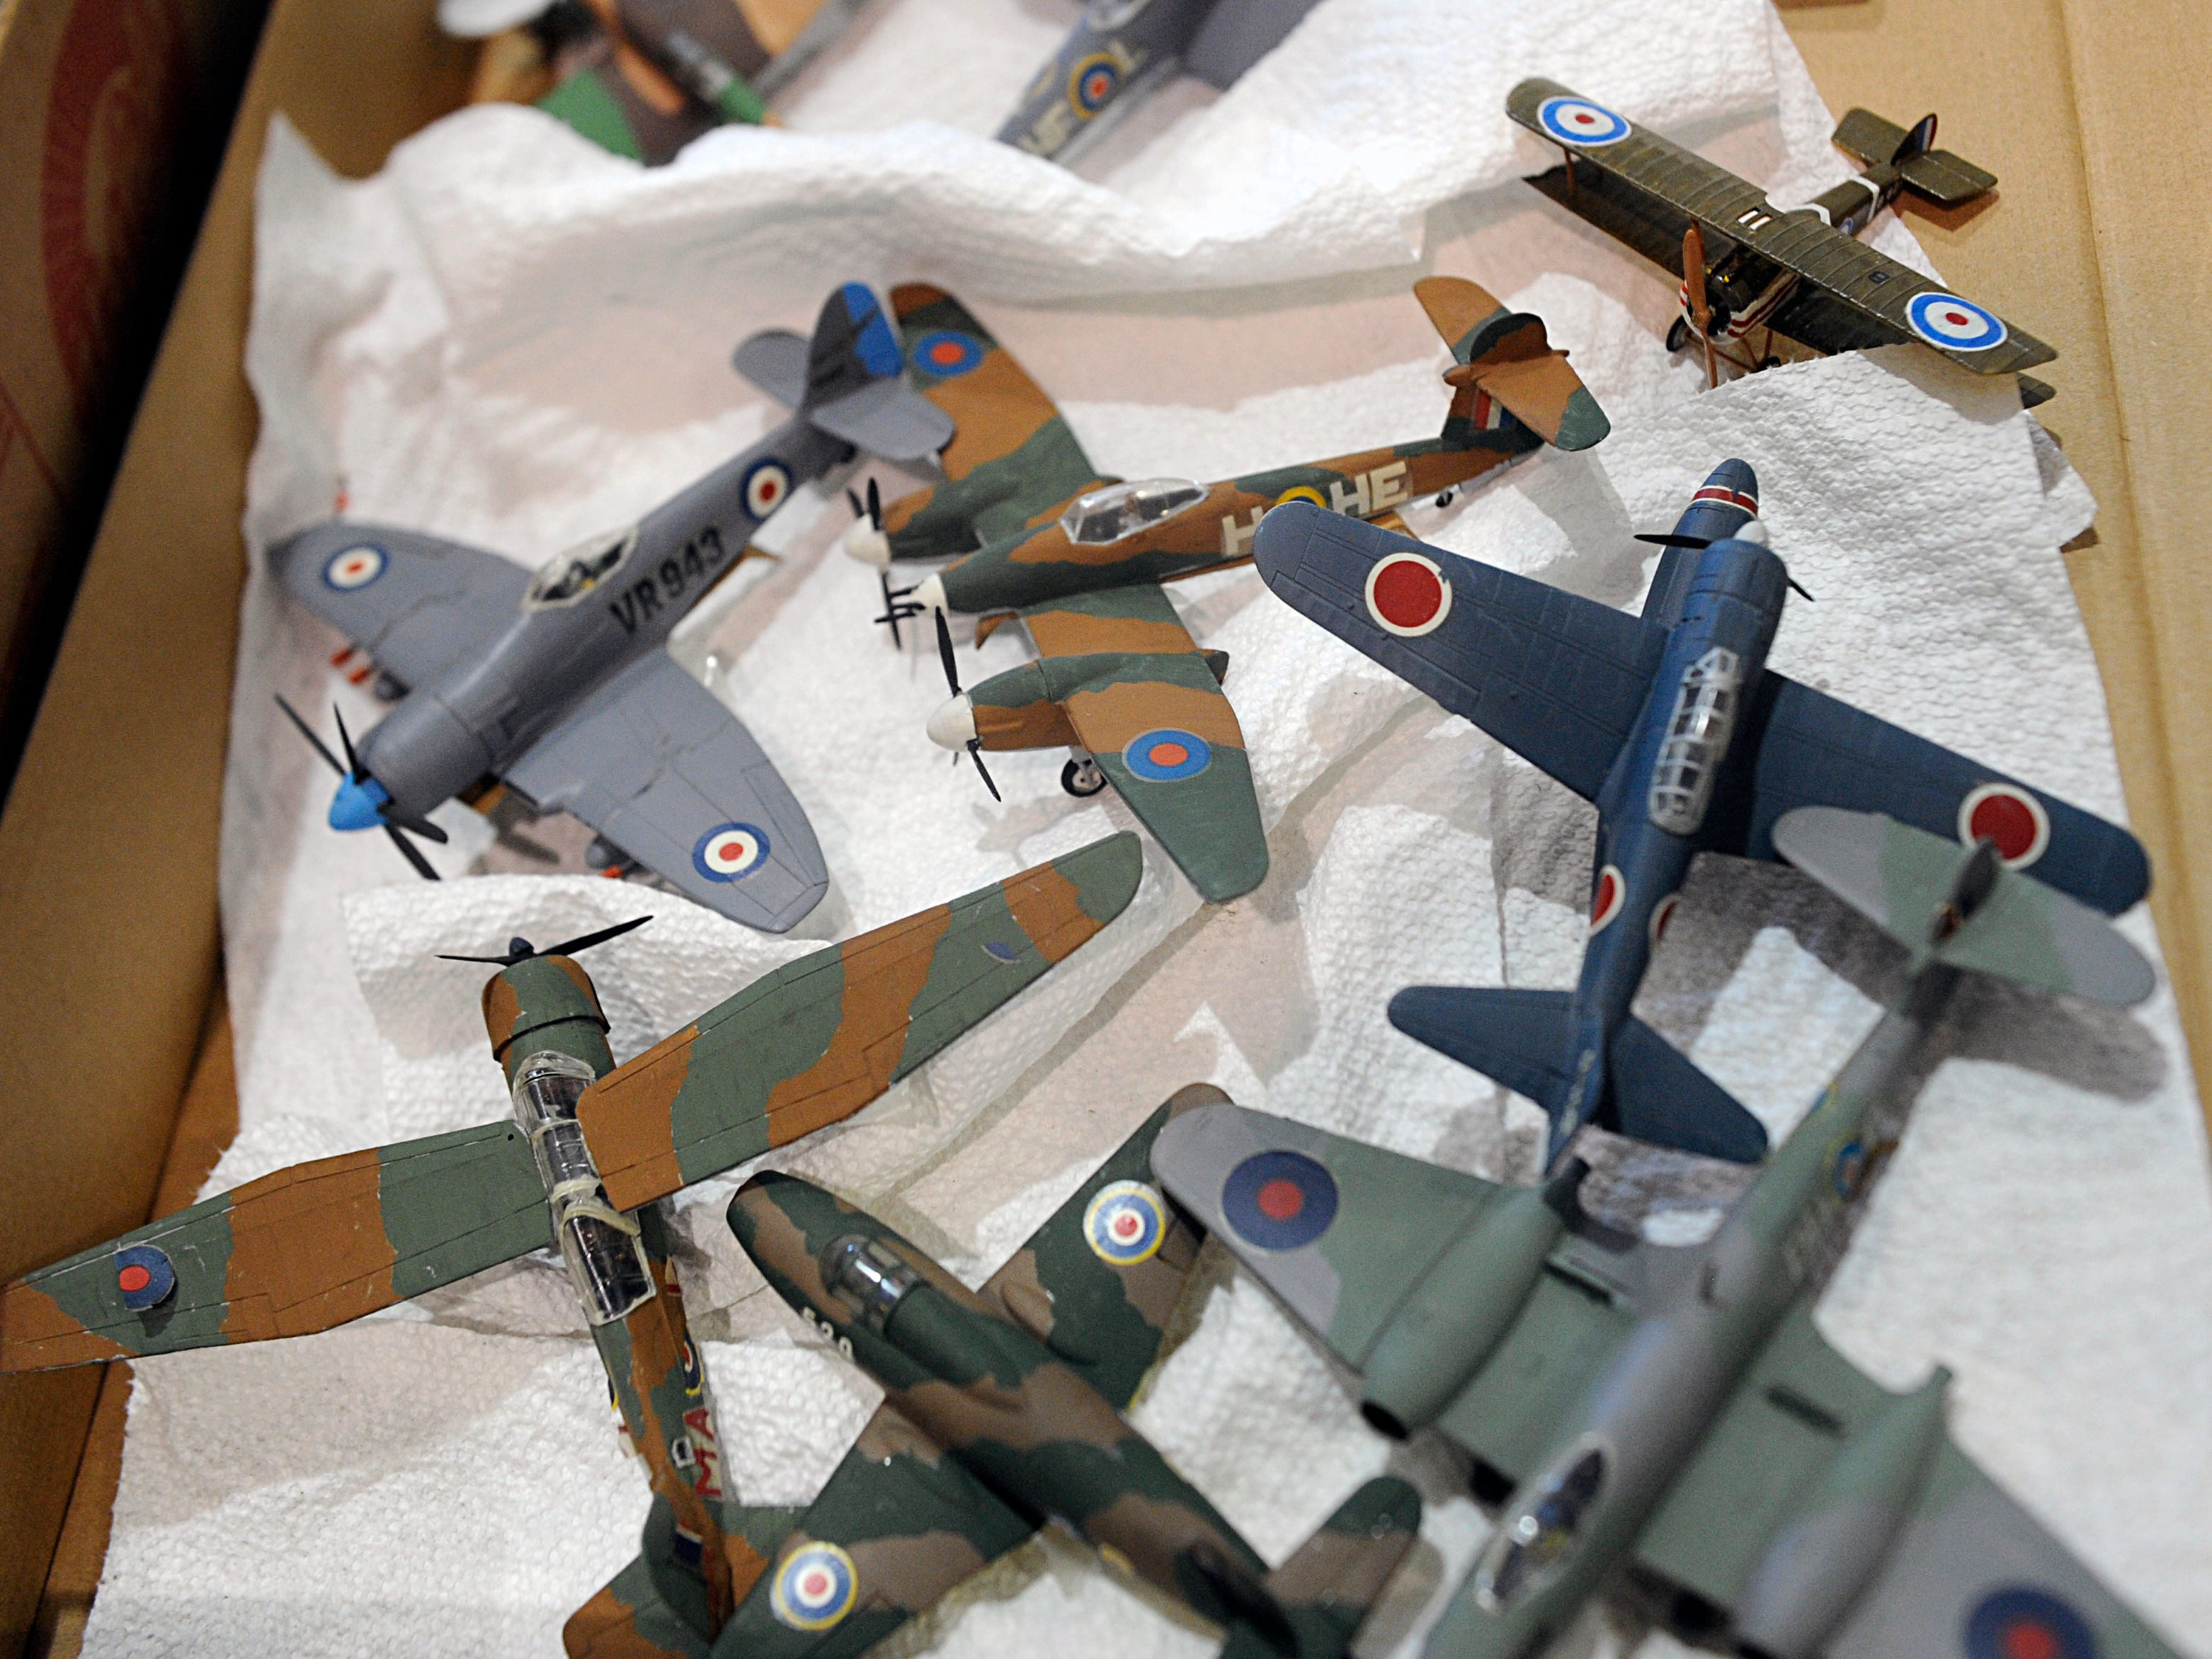 Historic military items were on display before being auctioned off at the Millville Municipal Airport on Wednesday, October 24, 2018.